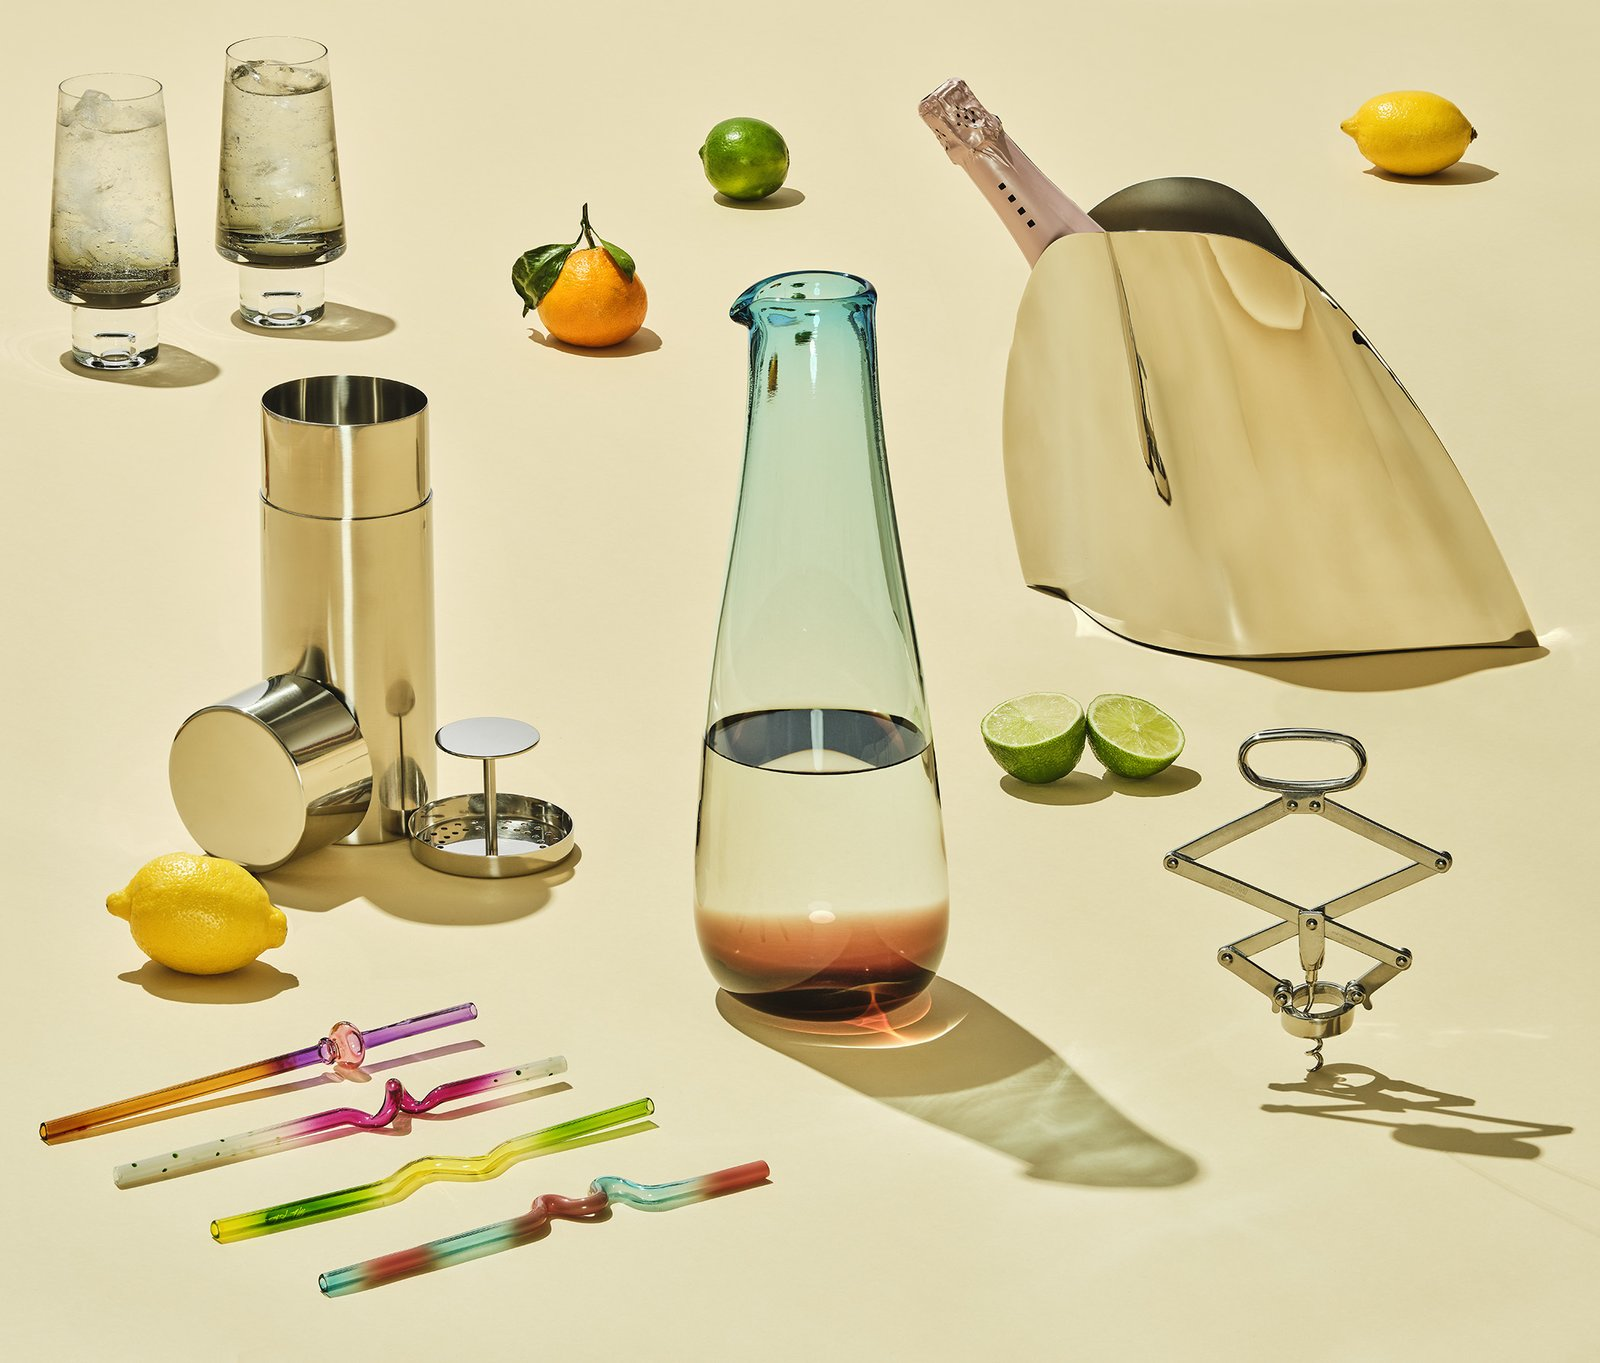 The Best New Barware to Spice Up Your Next Cocktail Party